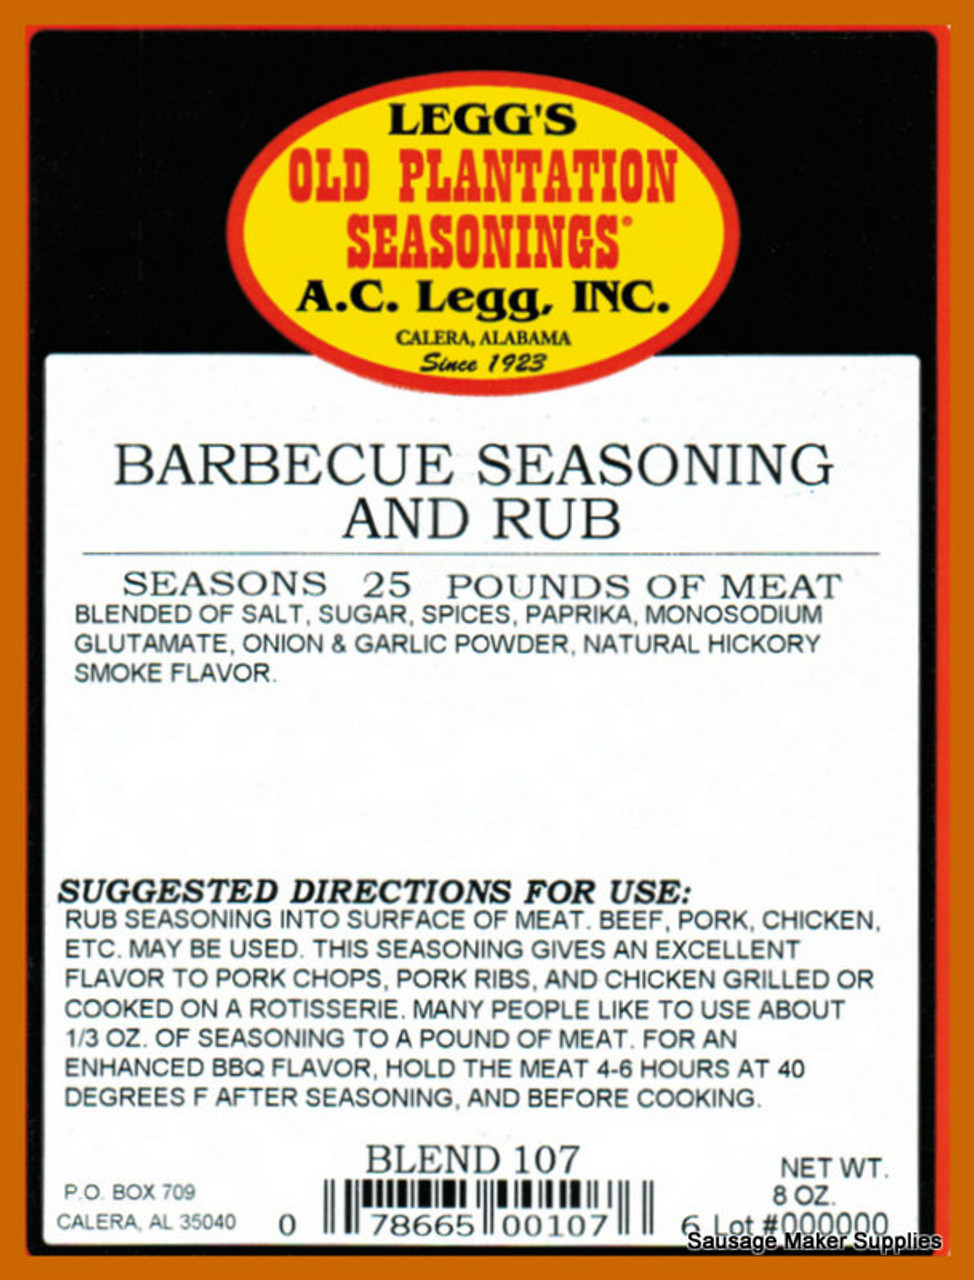 A.C. LEGG OLD PLANTATION BLEND 107 This blend of seasonings can be either sprinkled on meat after it is cooked, or used ahead of cooking as a marinade.